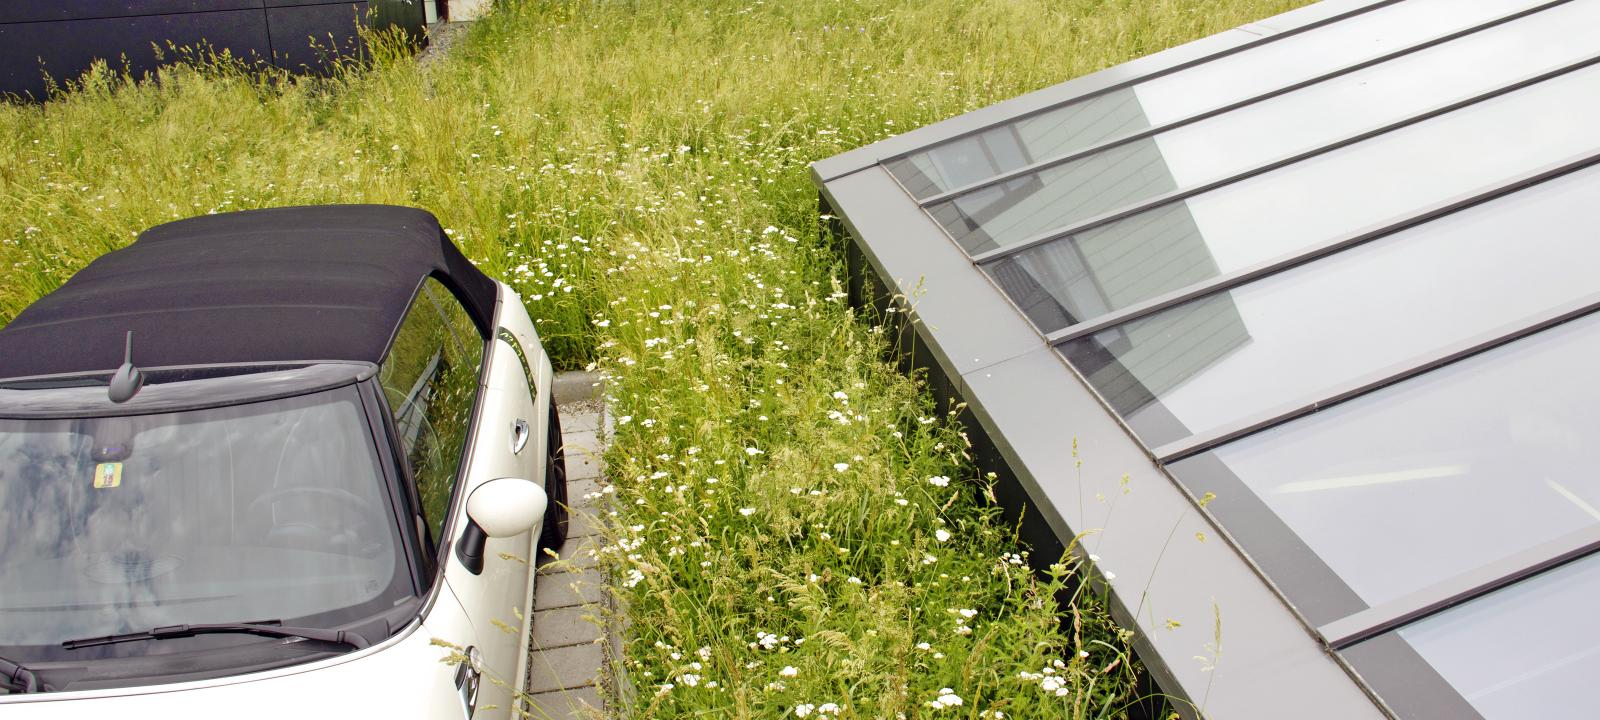 Hybrid Green Roofs | ZinCo Green Roof Systems USA